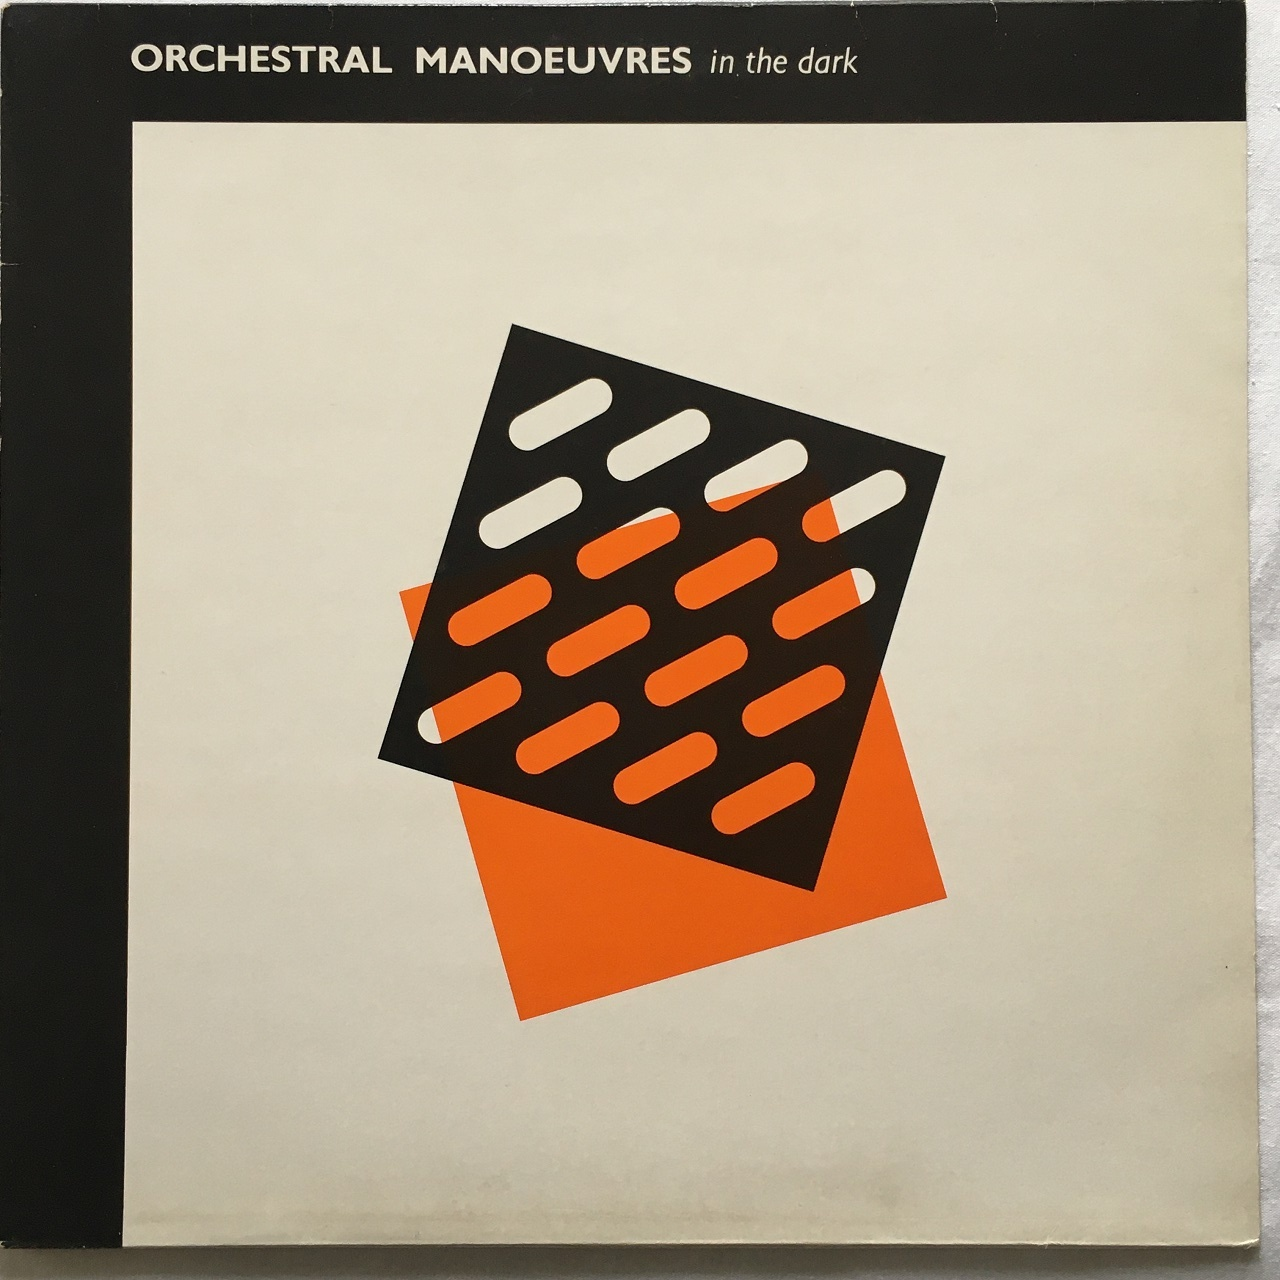 【LP・英盤】 Orchestral Manoeuvres In The Dark  /  Orchestral Manoeuvres In The Dark